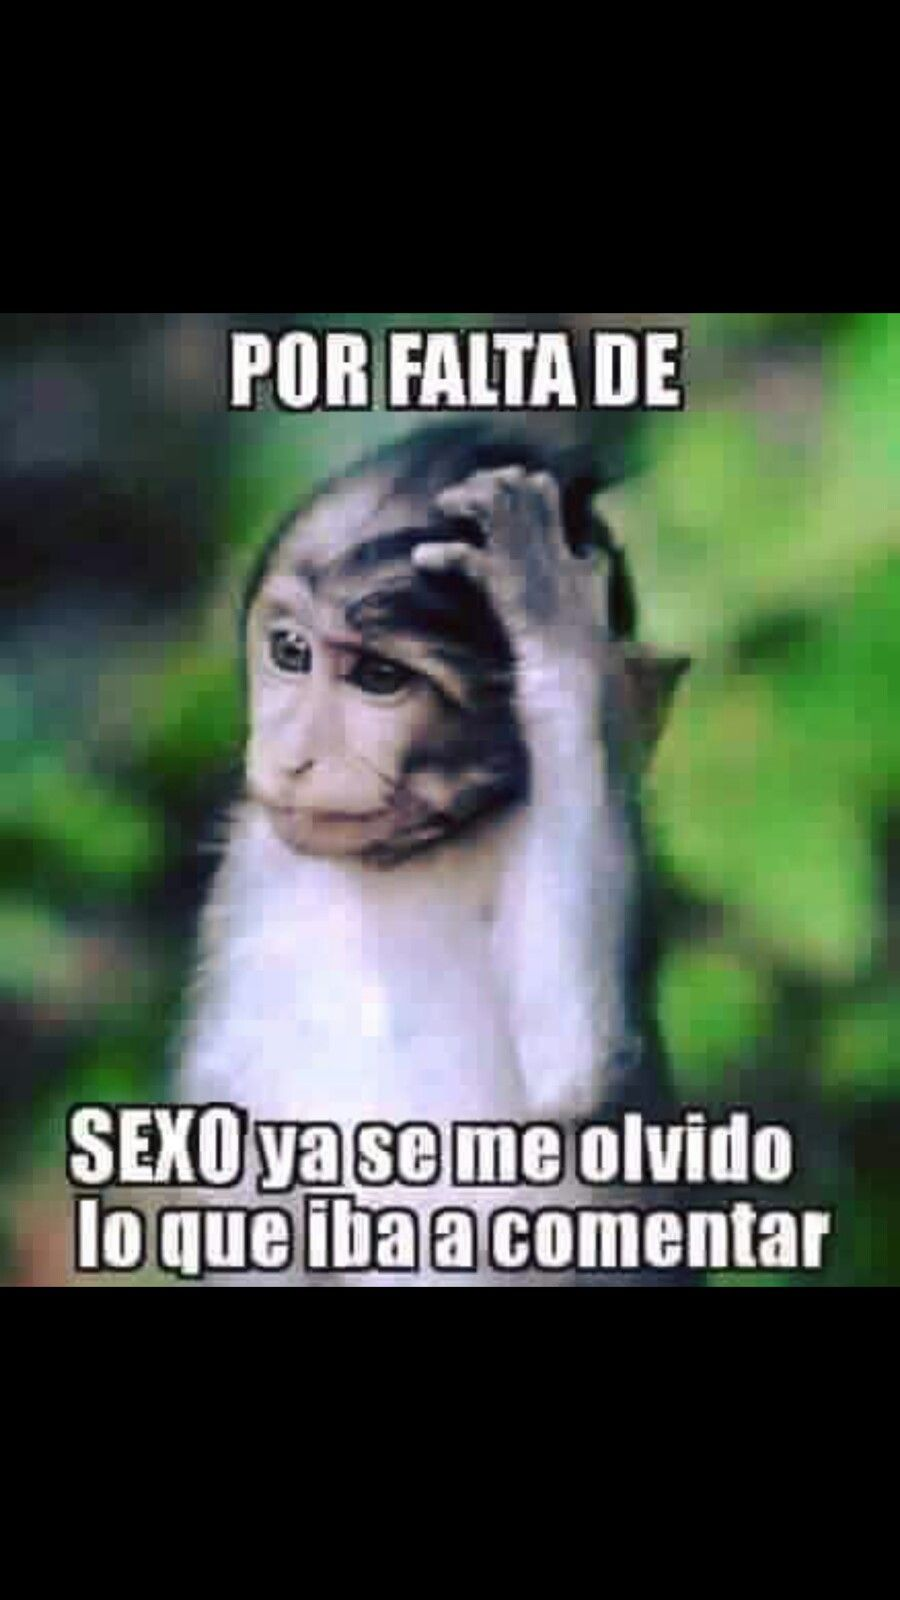 Pin By Erika Reyes On Memes Mexican Funny Memes Funny Spanish Jokes Funny Spanish Memes